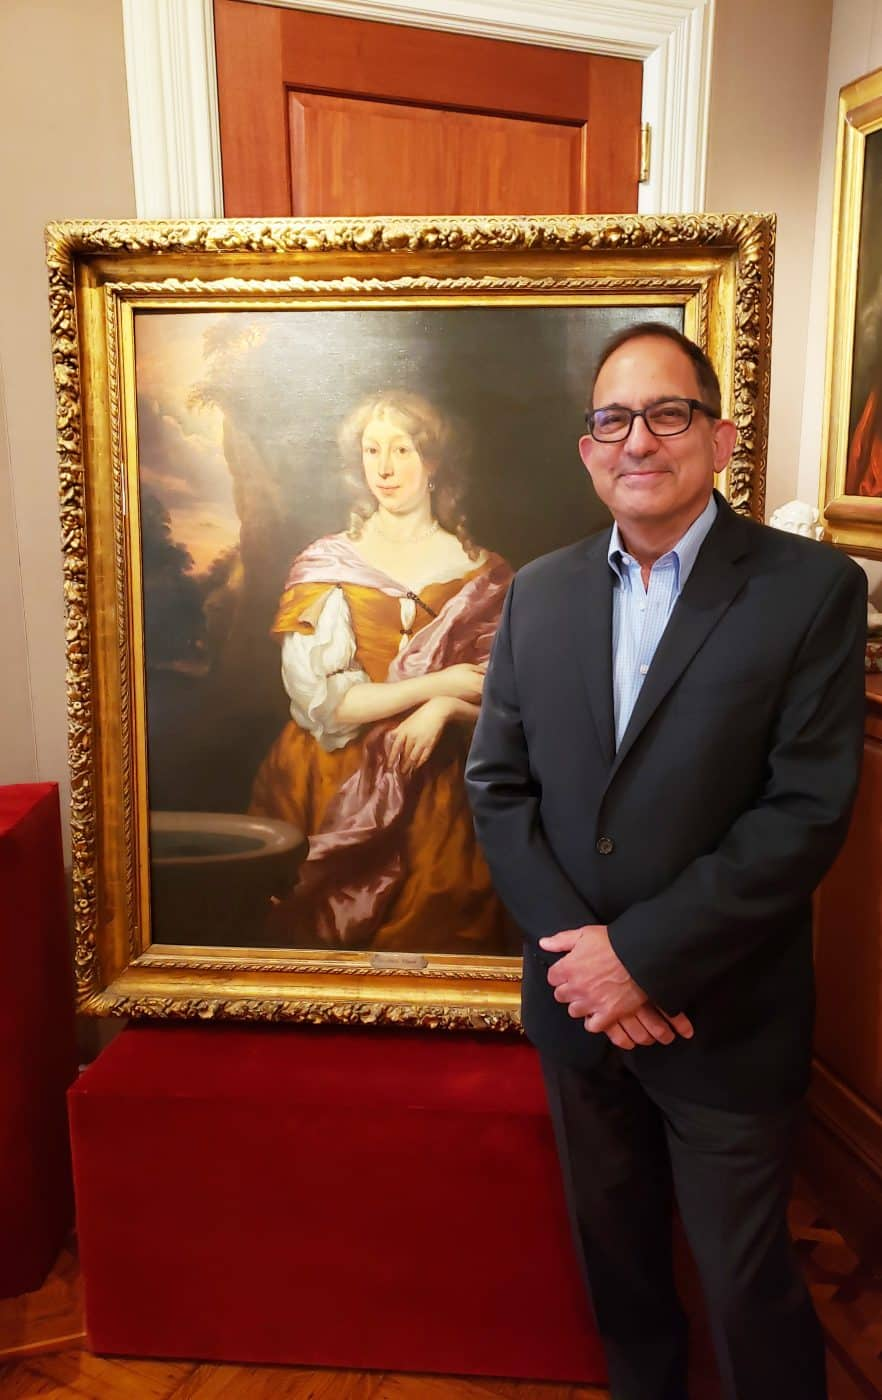 Old Master dealer Robert Simon with Portrait of a Young Lady, 1672, by Dutch painter Nicolaes Maes, in his eponymous Manhattan gallery